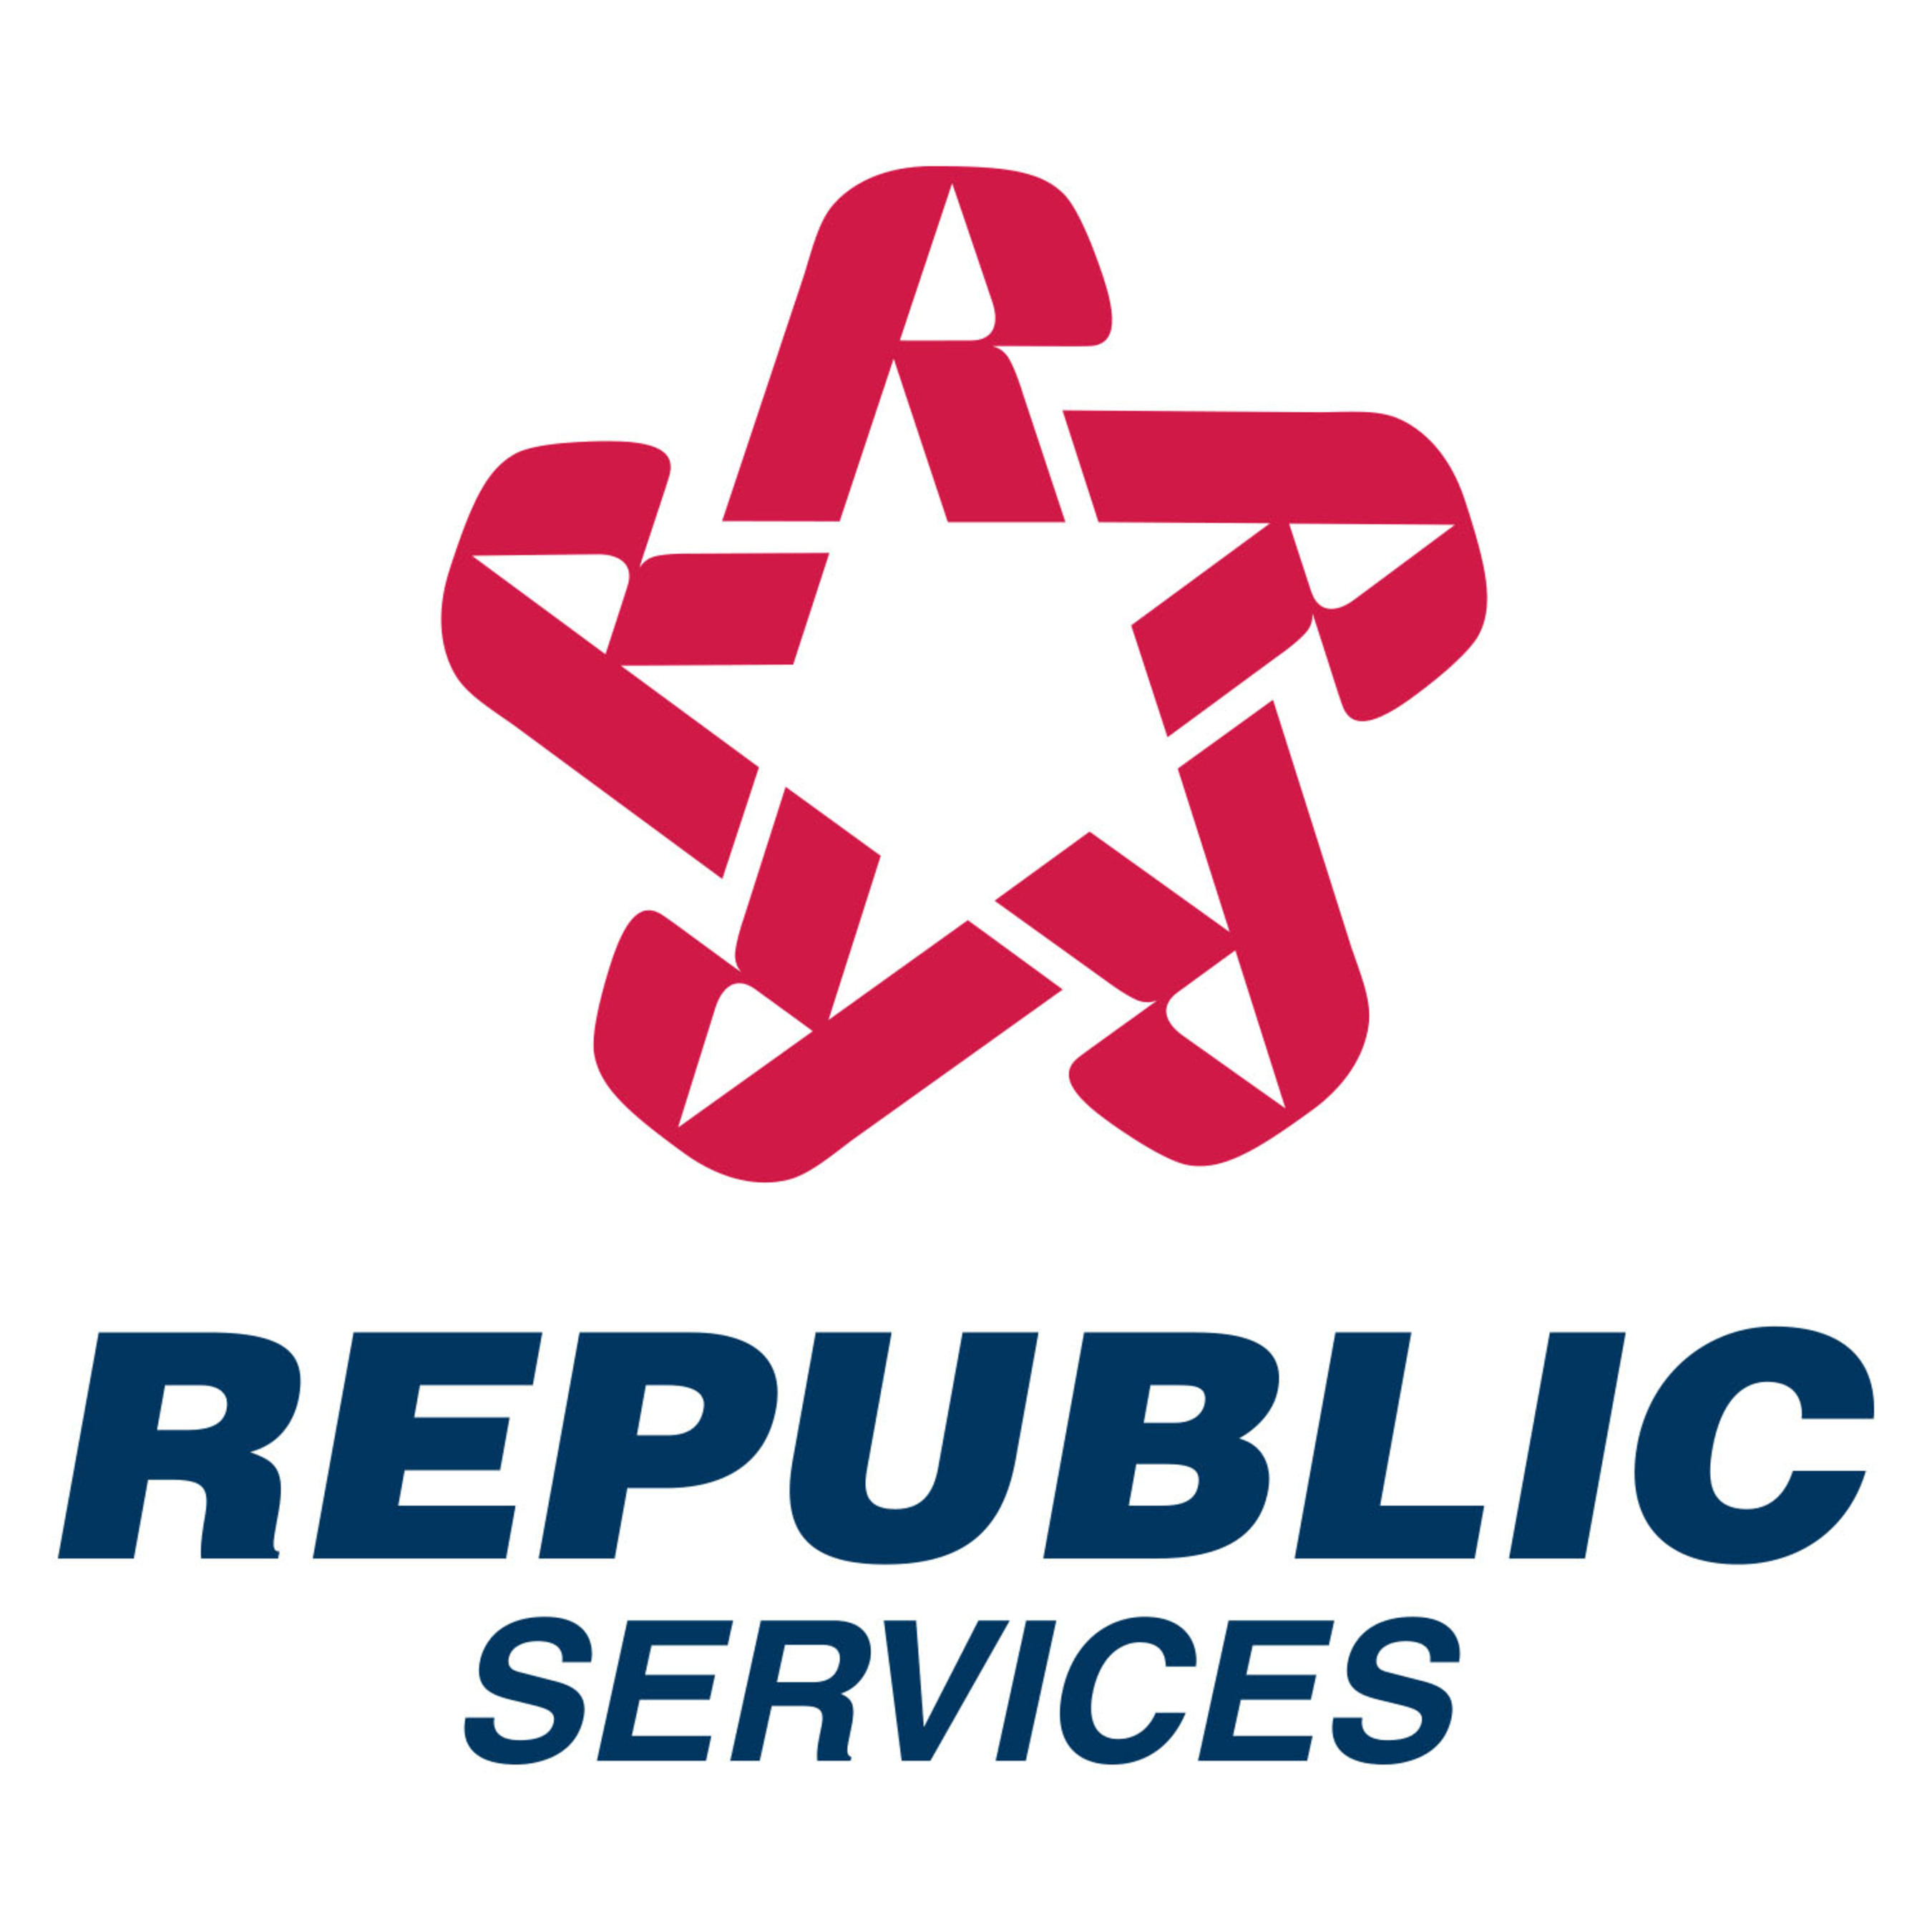 Republic Services, Inc. logo.